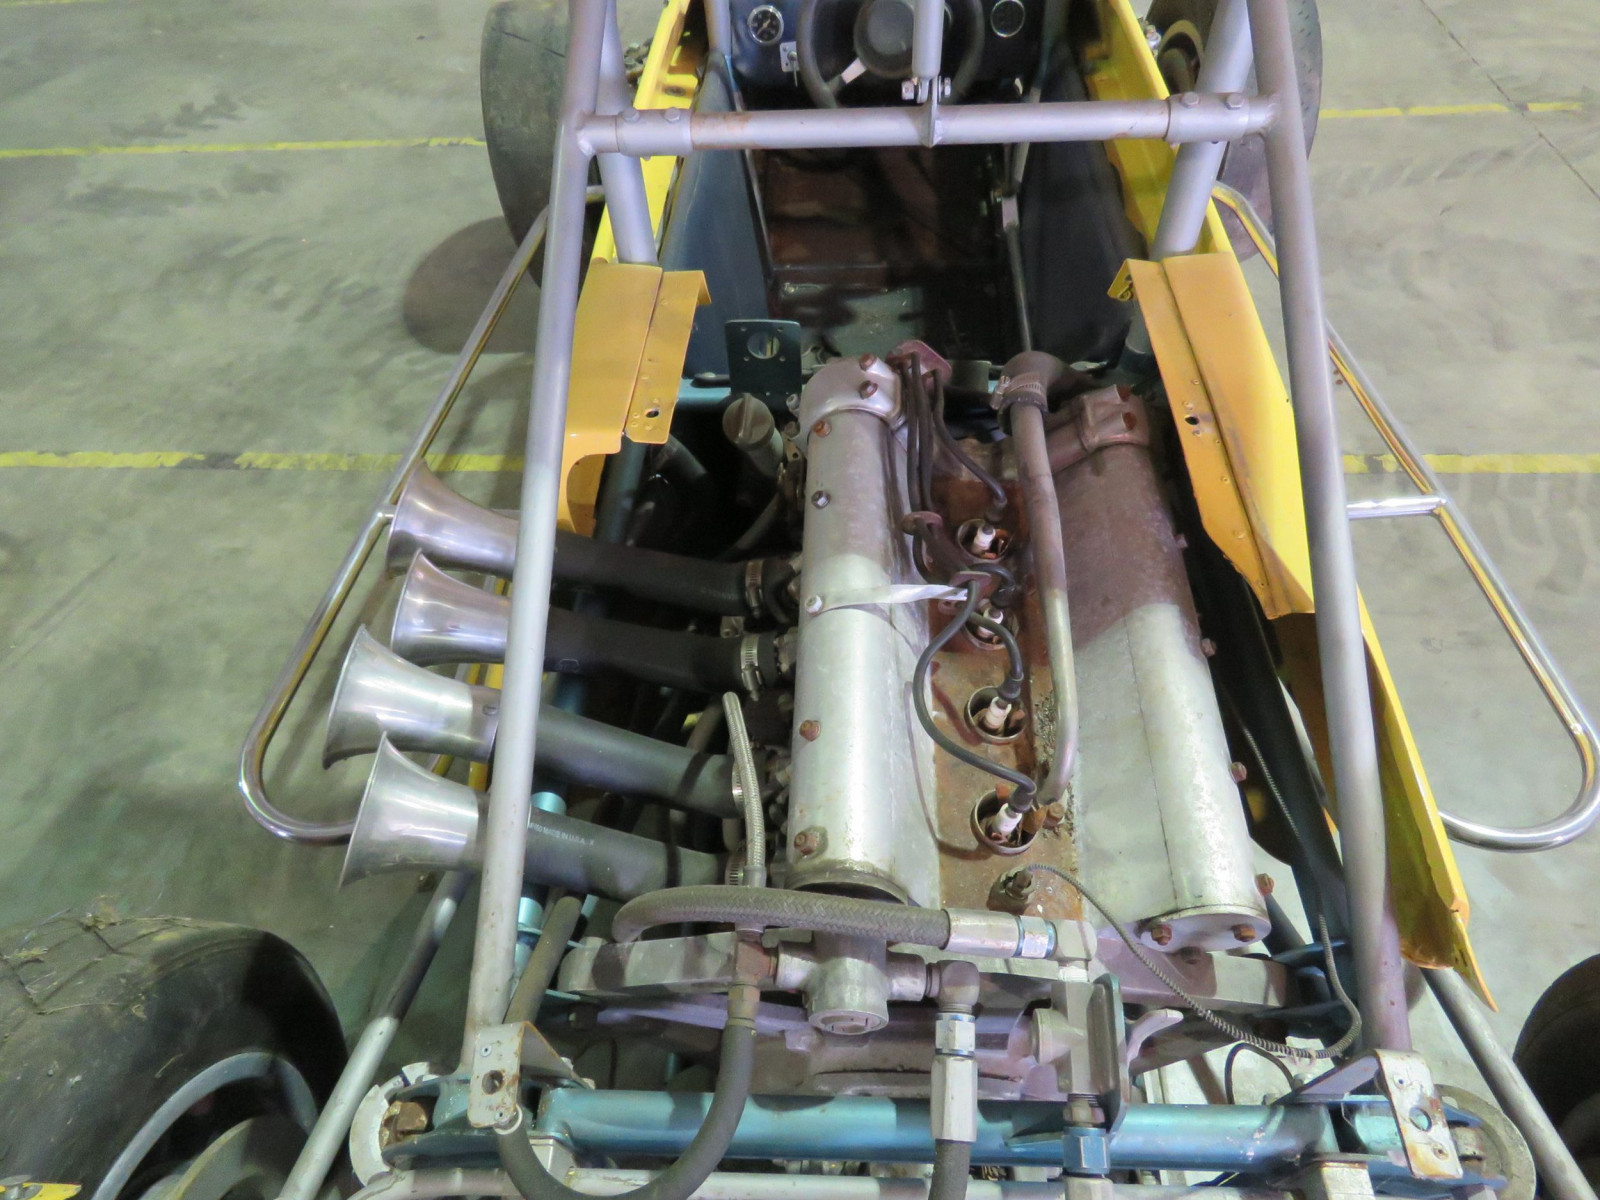 RARE Ken Brenn rear Engine 110 Beattie Midget Race Car - Image 11